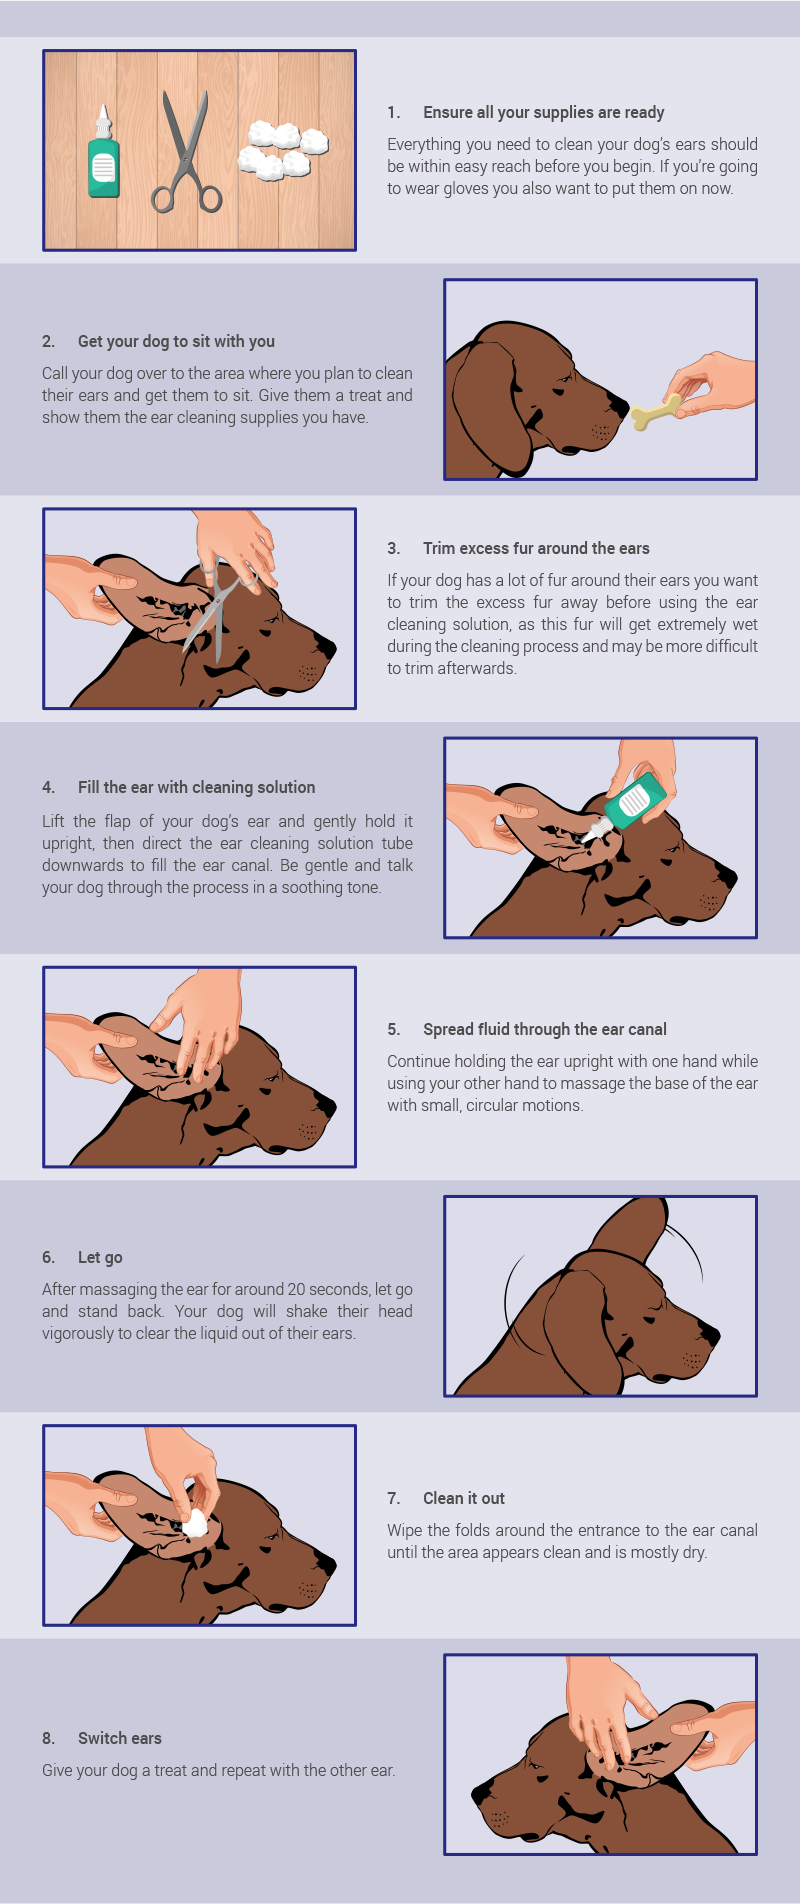 Step by step: How to clean dog ears by Montego.